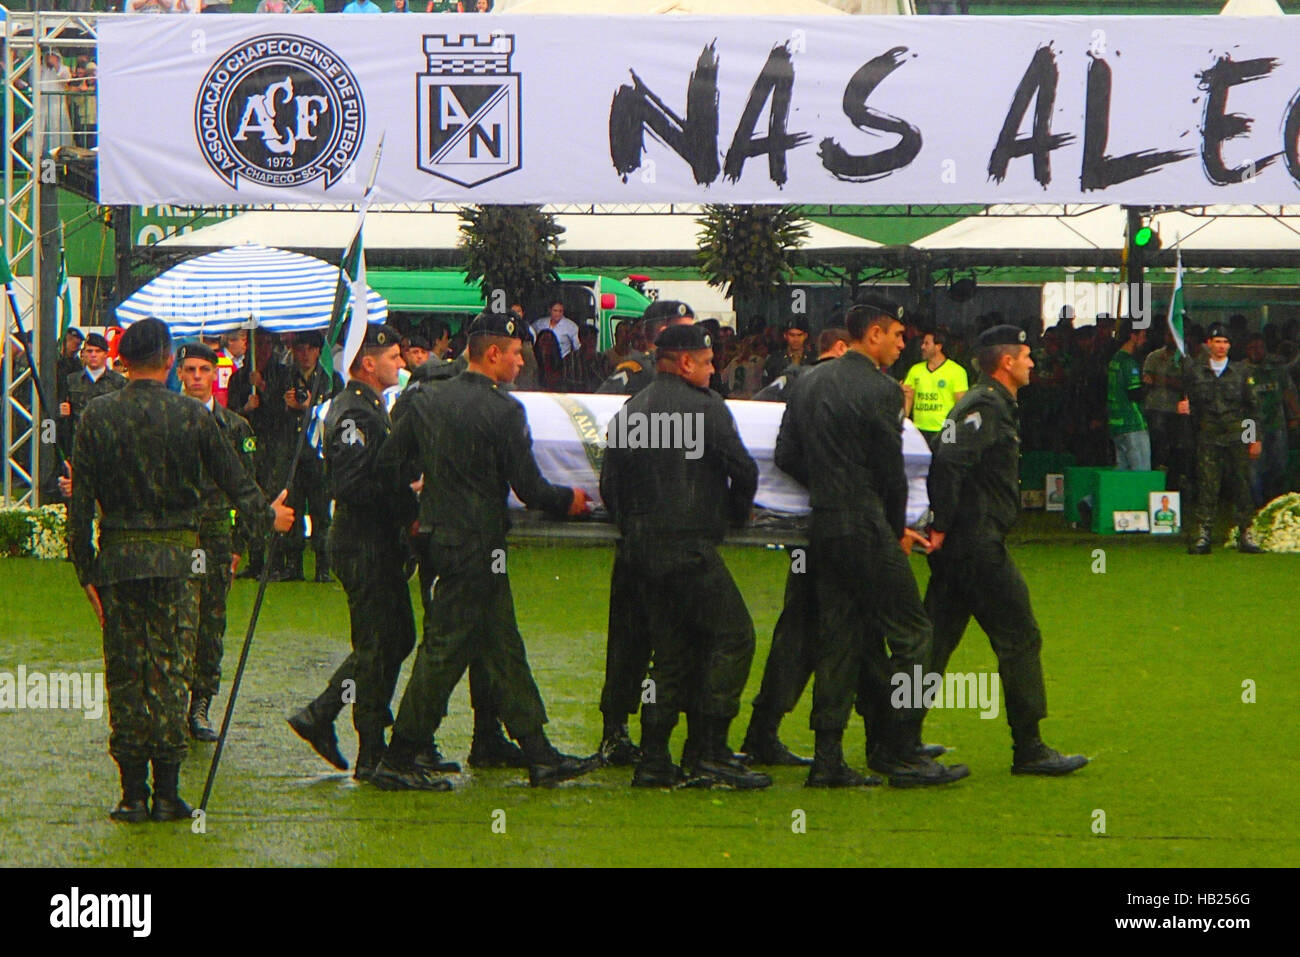 Chapeco, Brazil. 3rd Dec, 2016. Soldiers carry the coffins of the players into the stadium during a mourning service - Stock Image